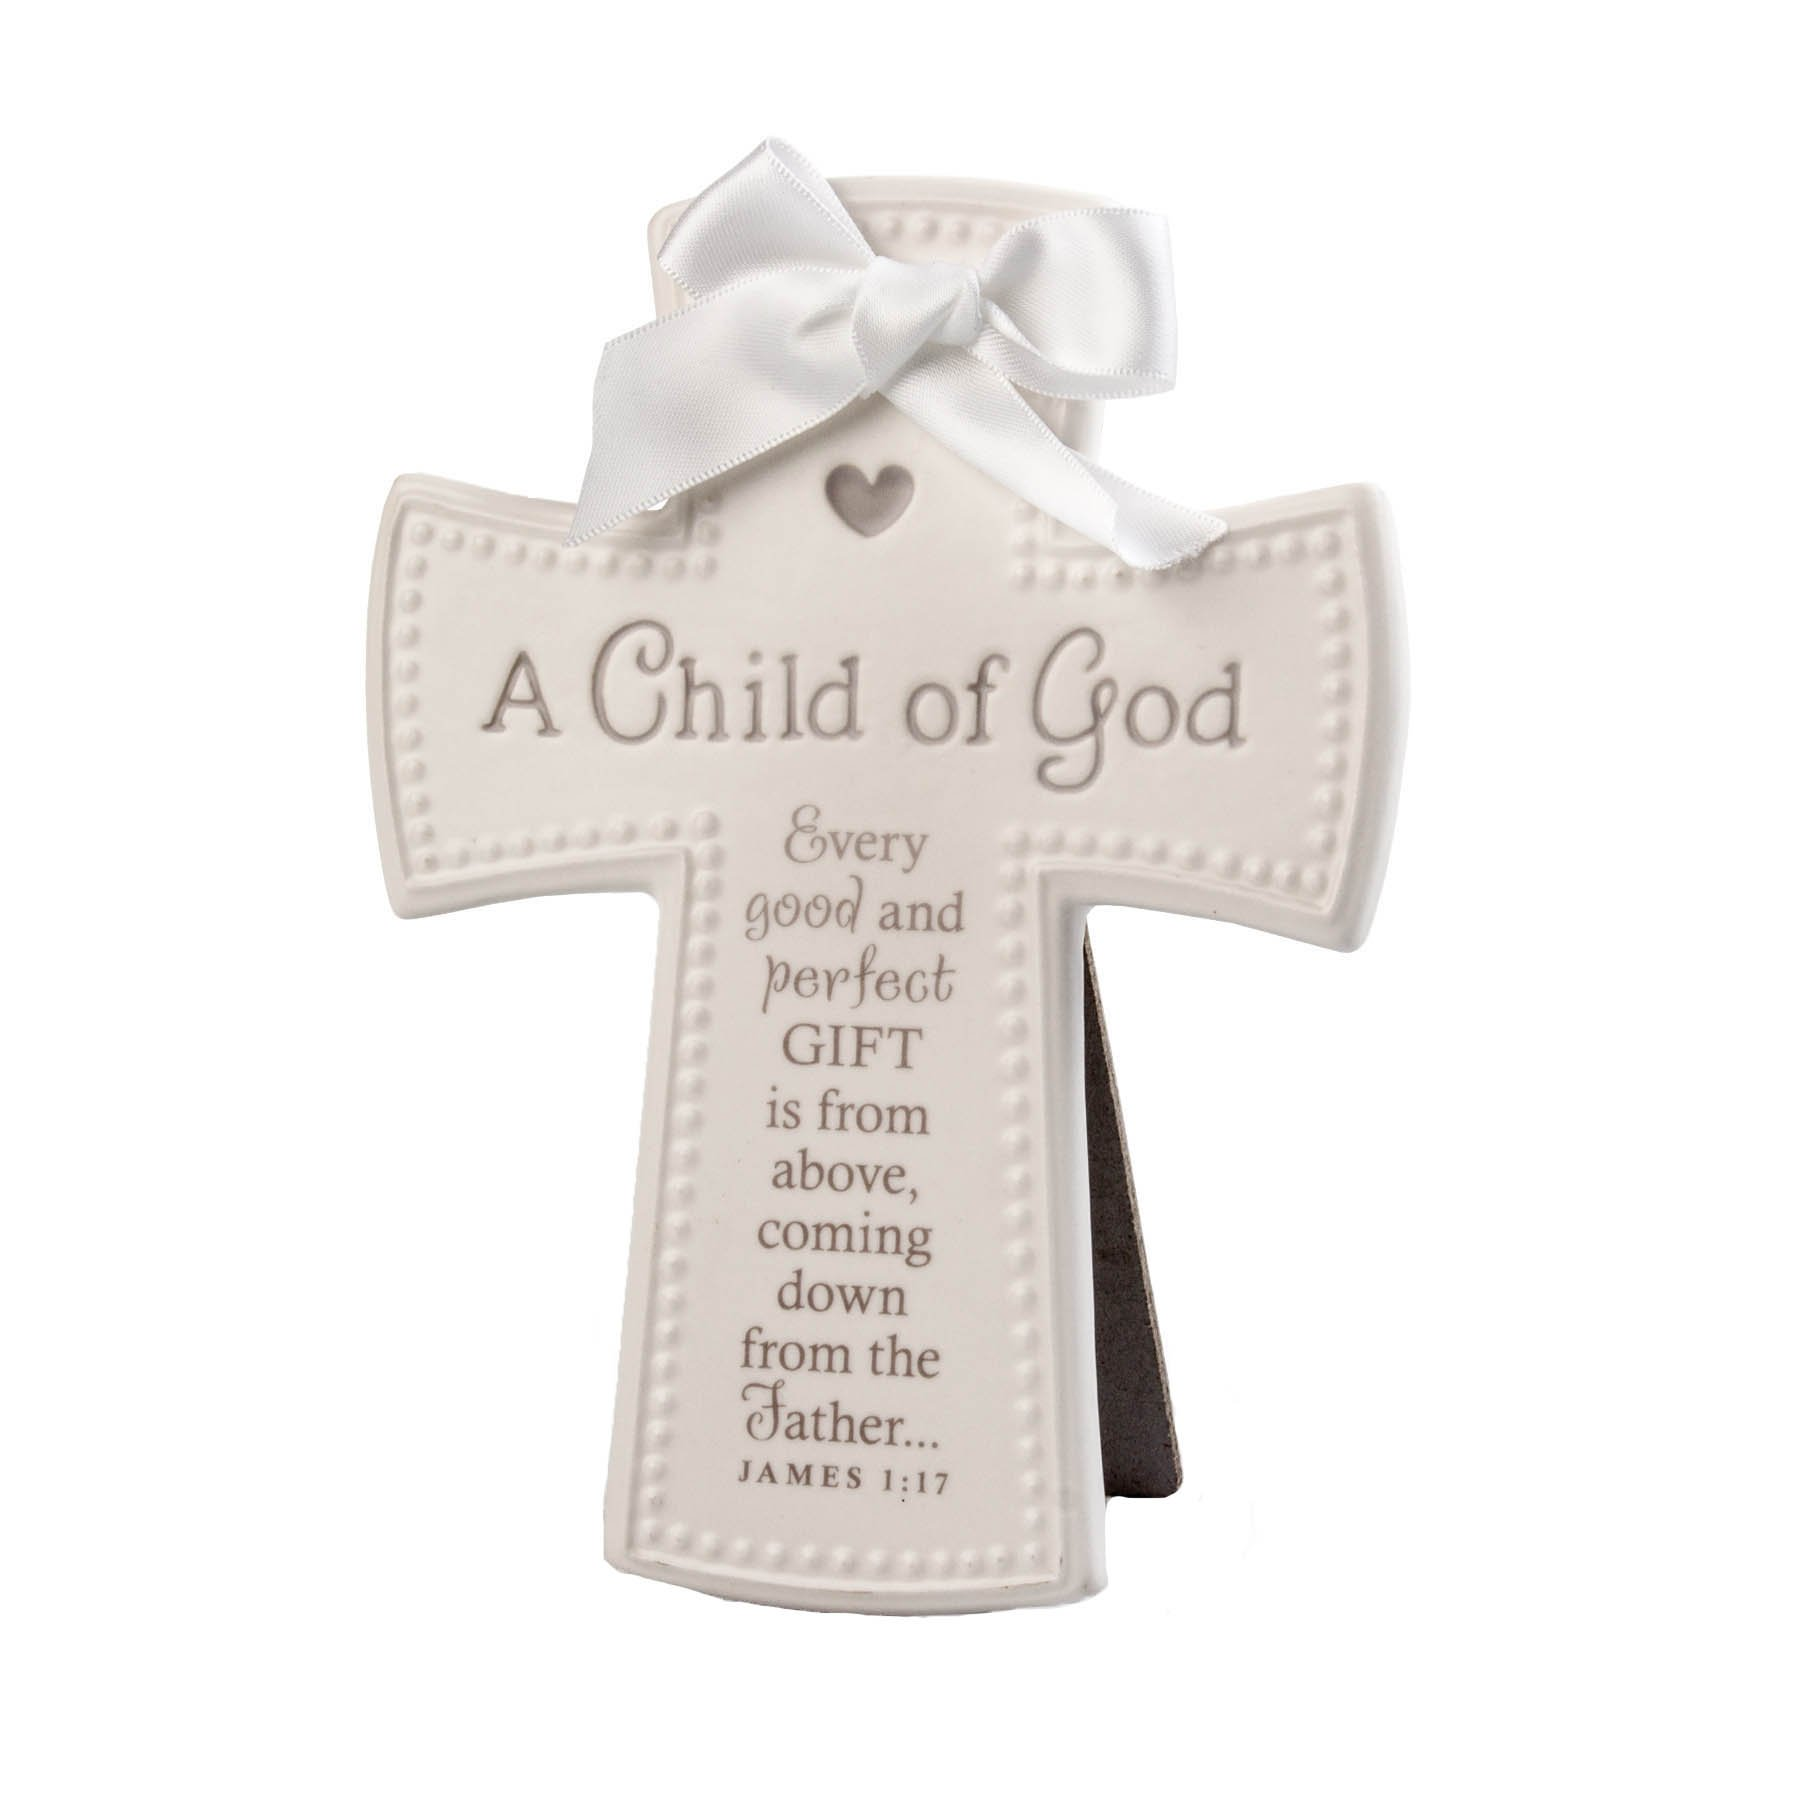 Lighthouse Christian Products White & Gray a Child of God Wall/Desktop Cross, 5 x 6 1/2''